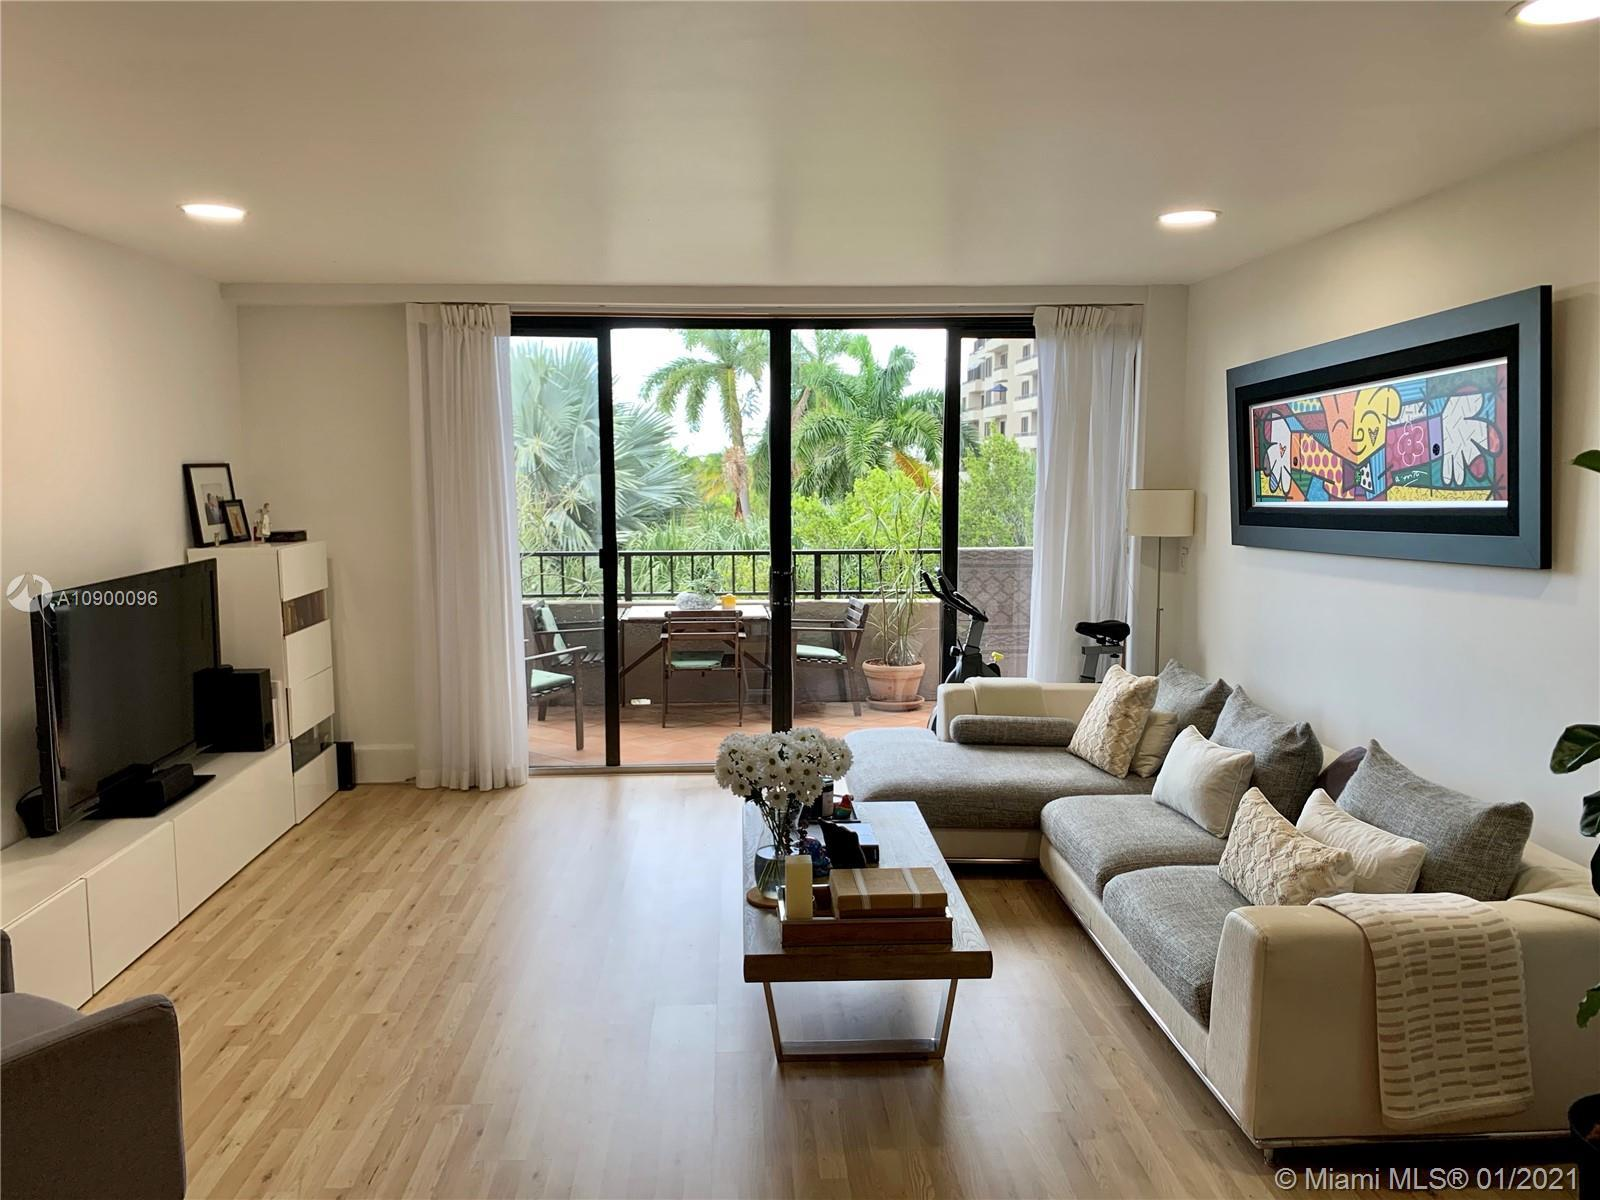 Stunning, recently remodeled 2B+2BA apartment in desirable Emeraldbay building at Key Colony. One of